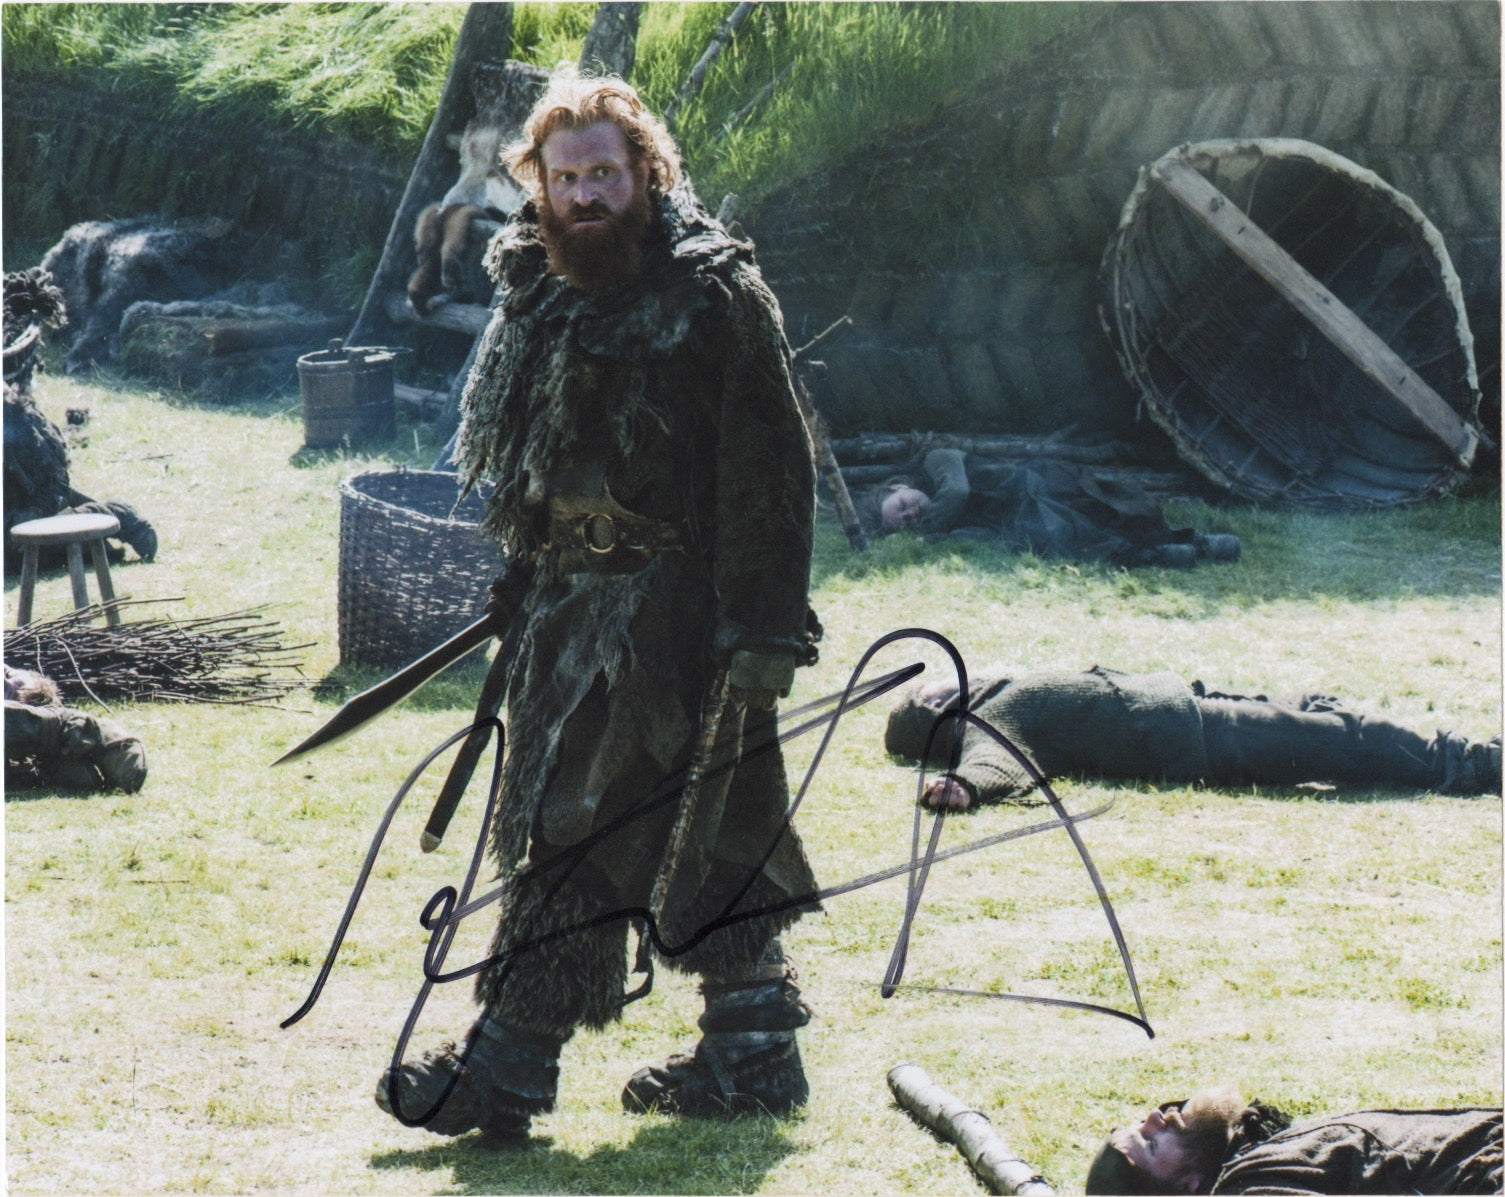 Kristofer Hivju Game of Thrones Signed Autograph 8x10 Photo - Outlaw Hobbies Authentic Autographs